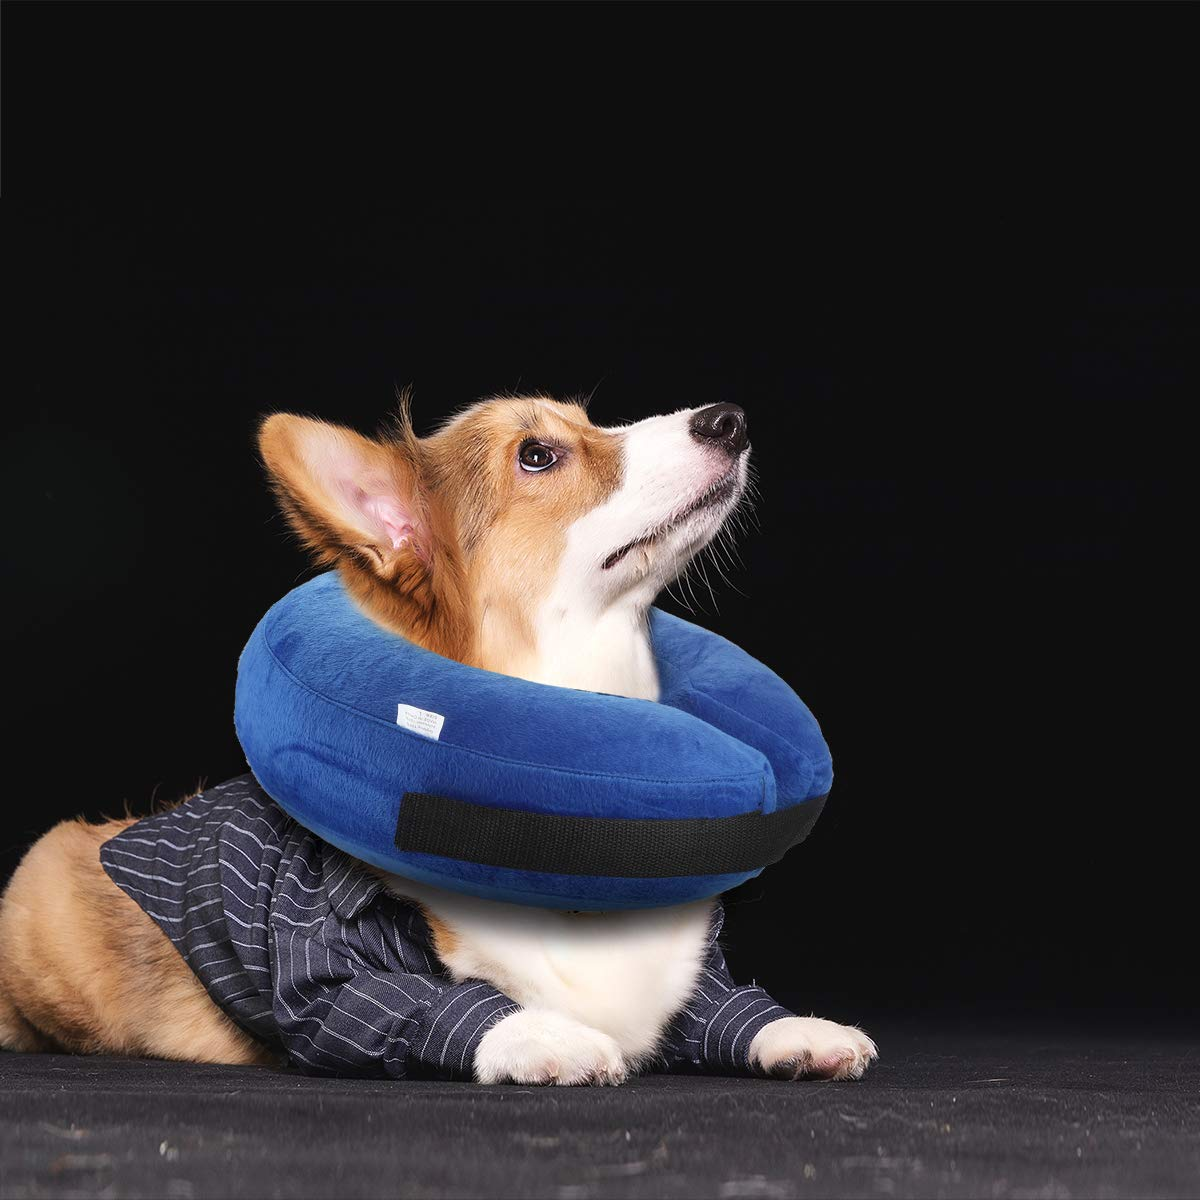 Protective Inflatable Dog Cone Collar,Comfortable Designed to Prevent Pets from Biting Scratching at Injuries, Stitches, Rashes Wounds,Adjustable Soft Pet Recovery Collar for Dogs or Cats (M) by sunpangpang